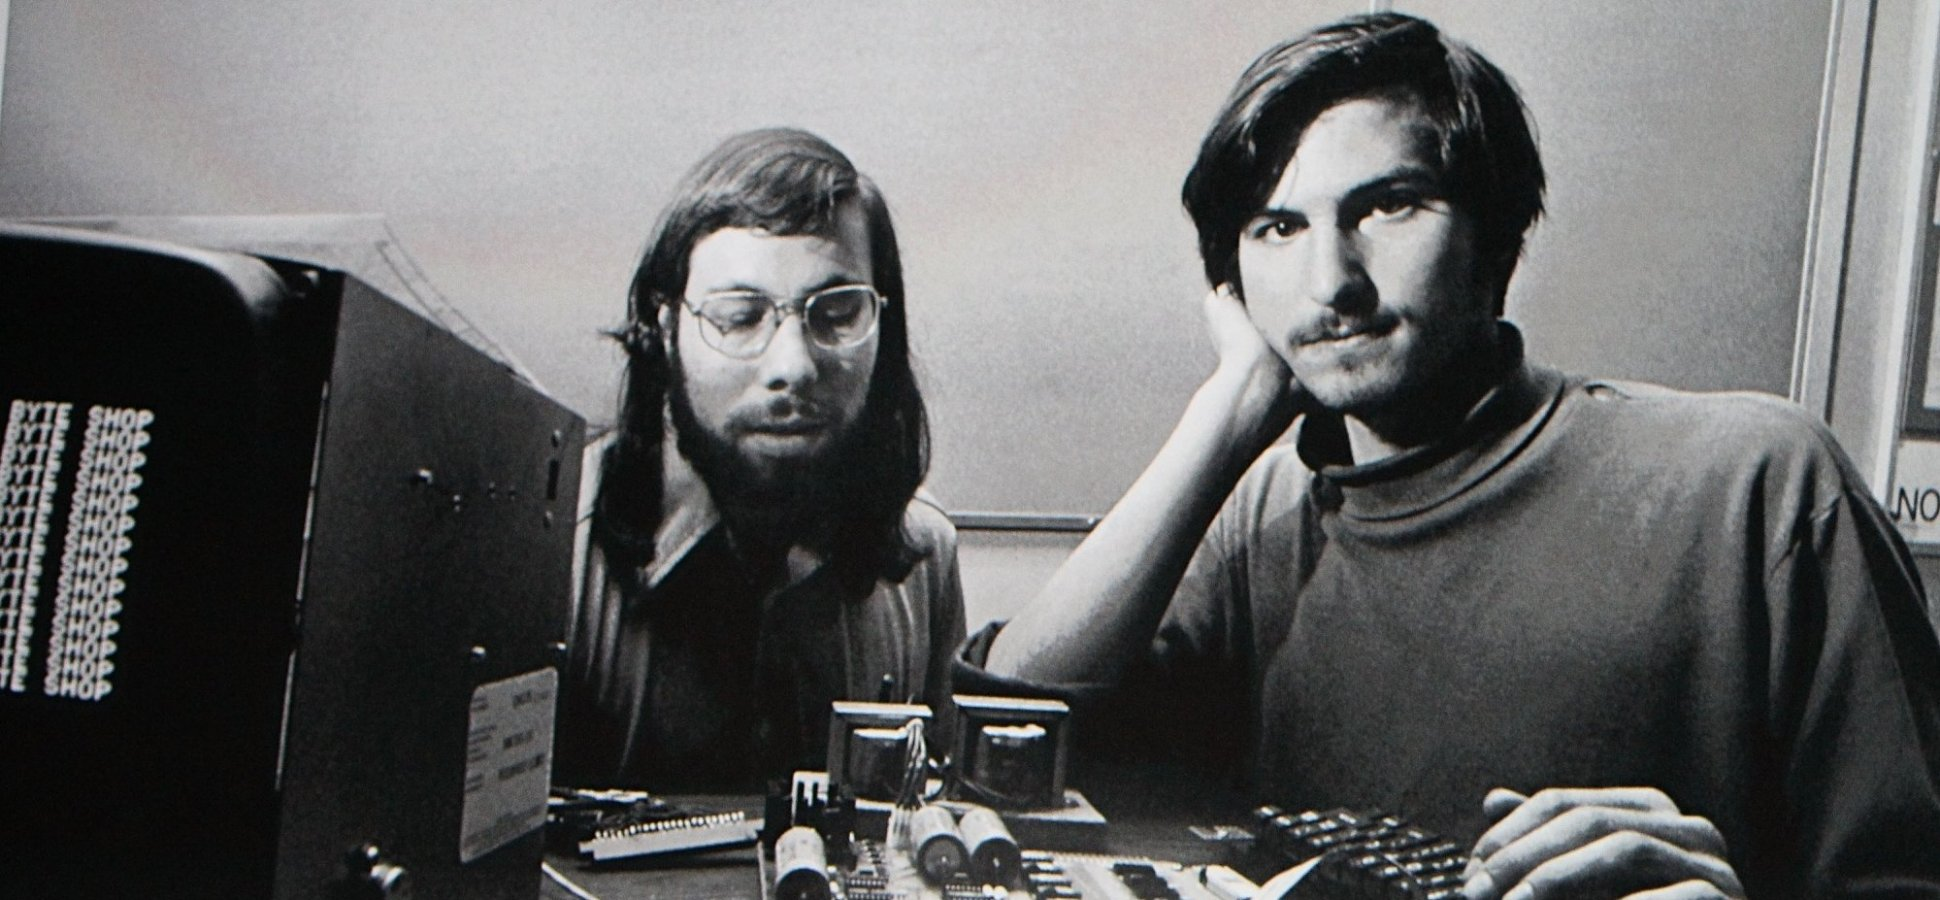 A World War II Plane That Kept Crashing Helped Lead to Steve Jobs' Biggest Innovations